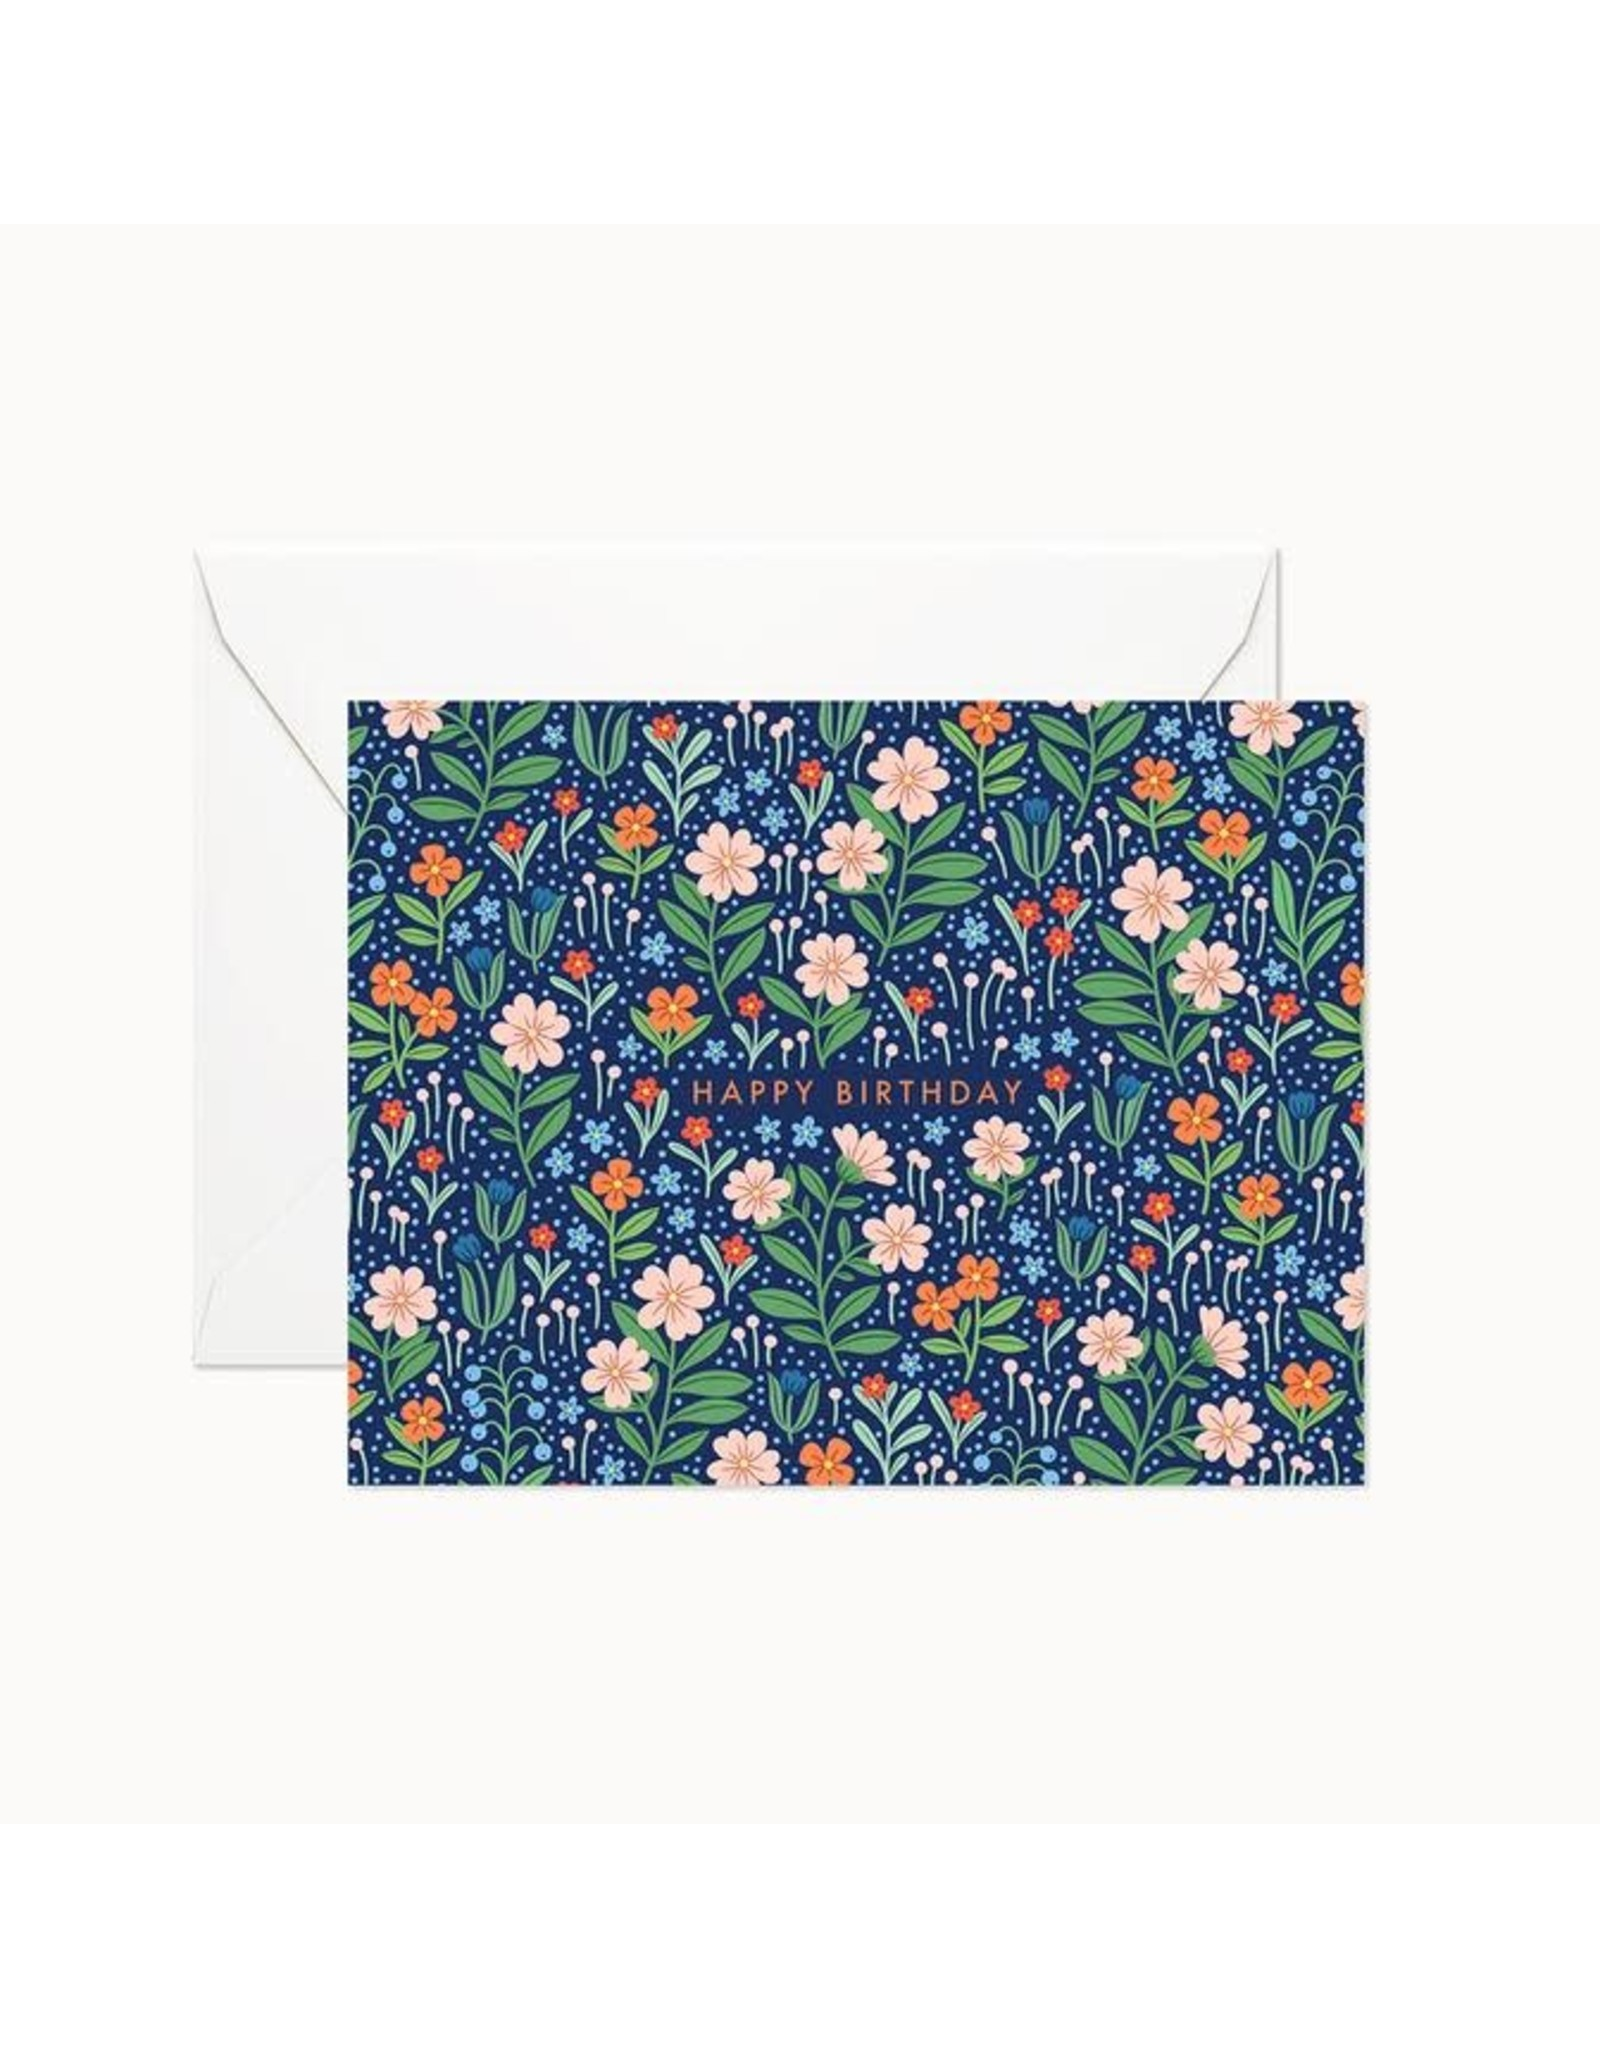 Linden Paper Co. Sweet Fields Birthday Card   Set of 8